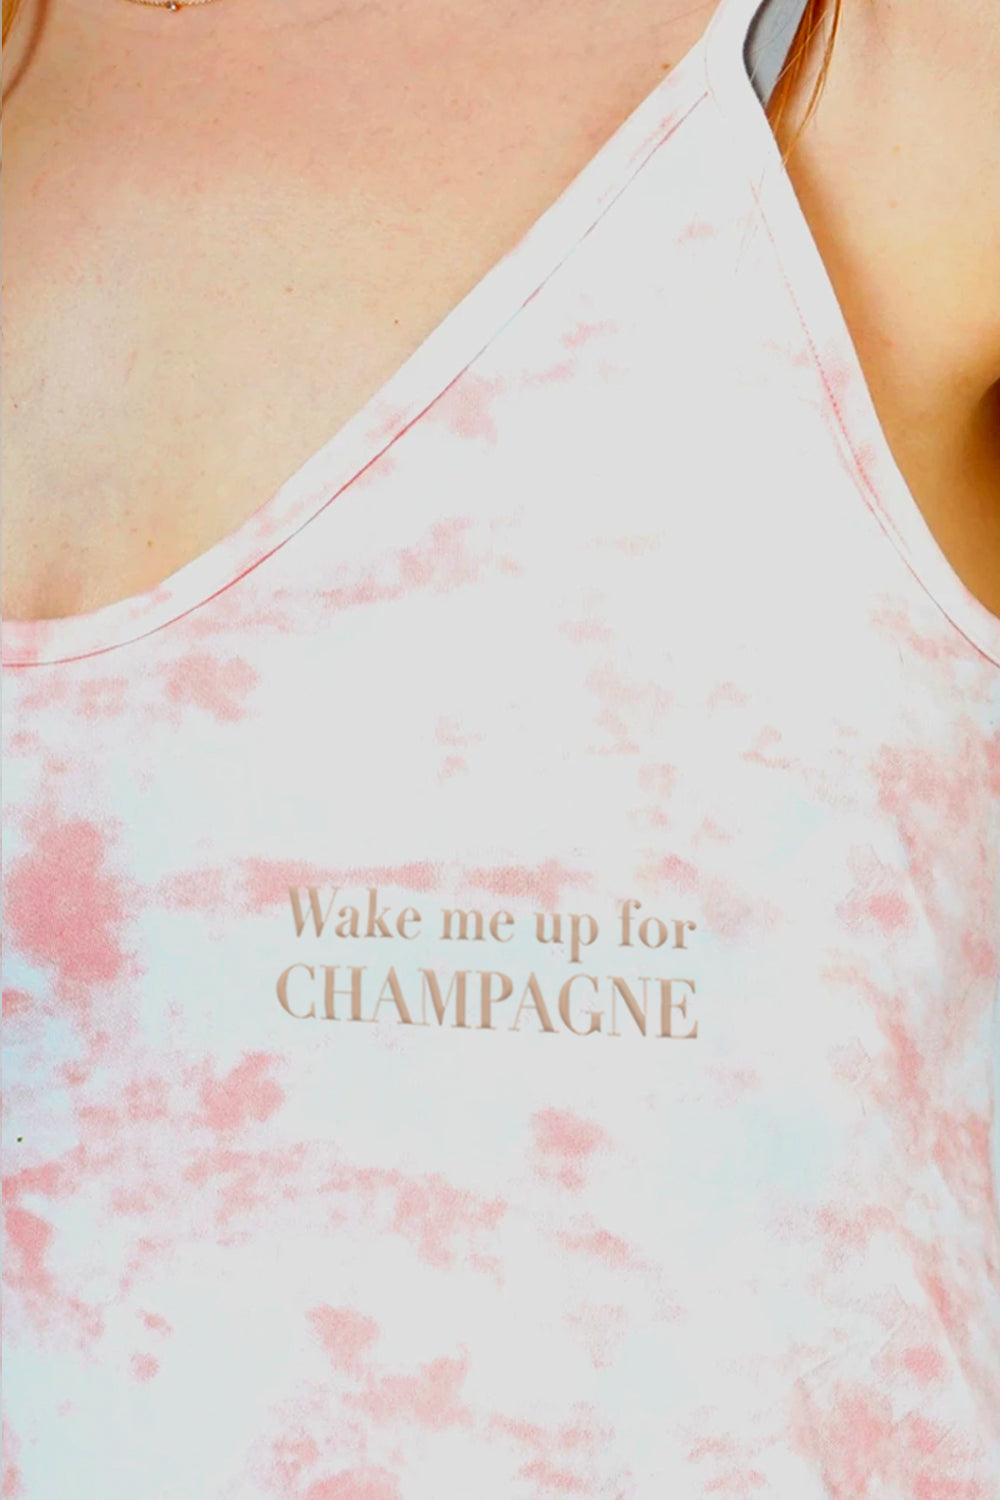 SLIP DRESS - Wake Up Champagne